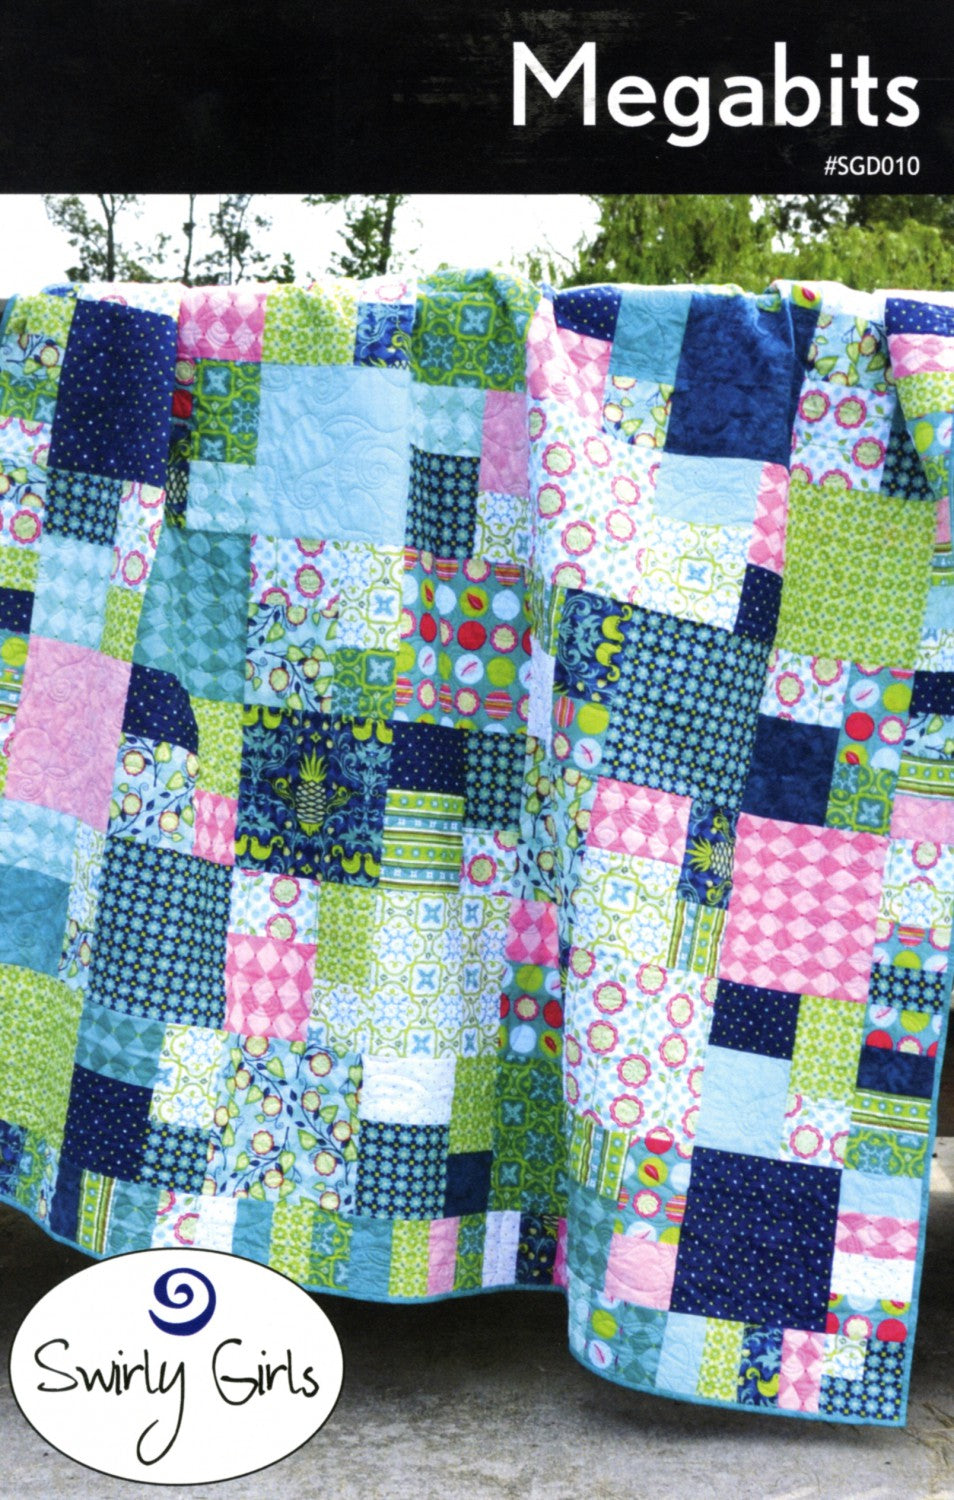 Swirly Girls Design: Megabits Quilt Pattern